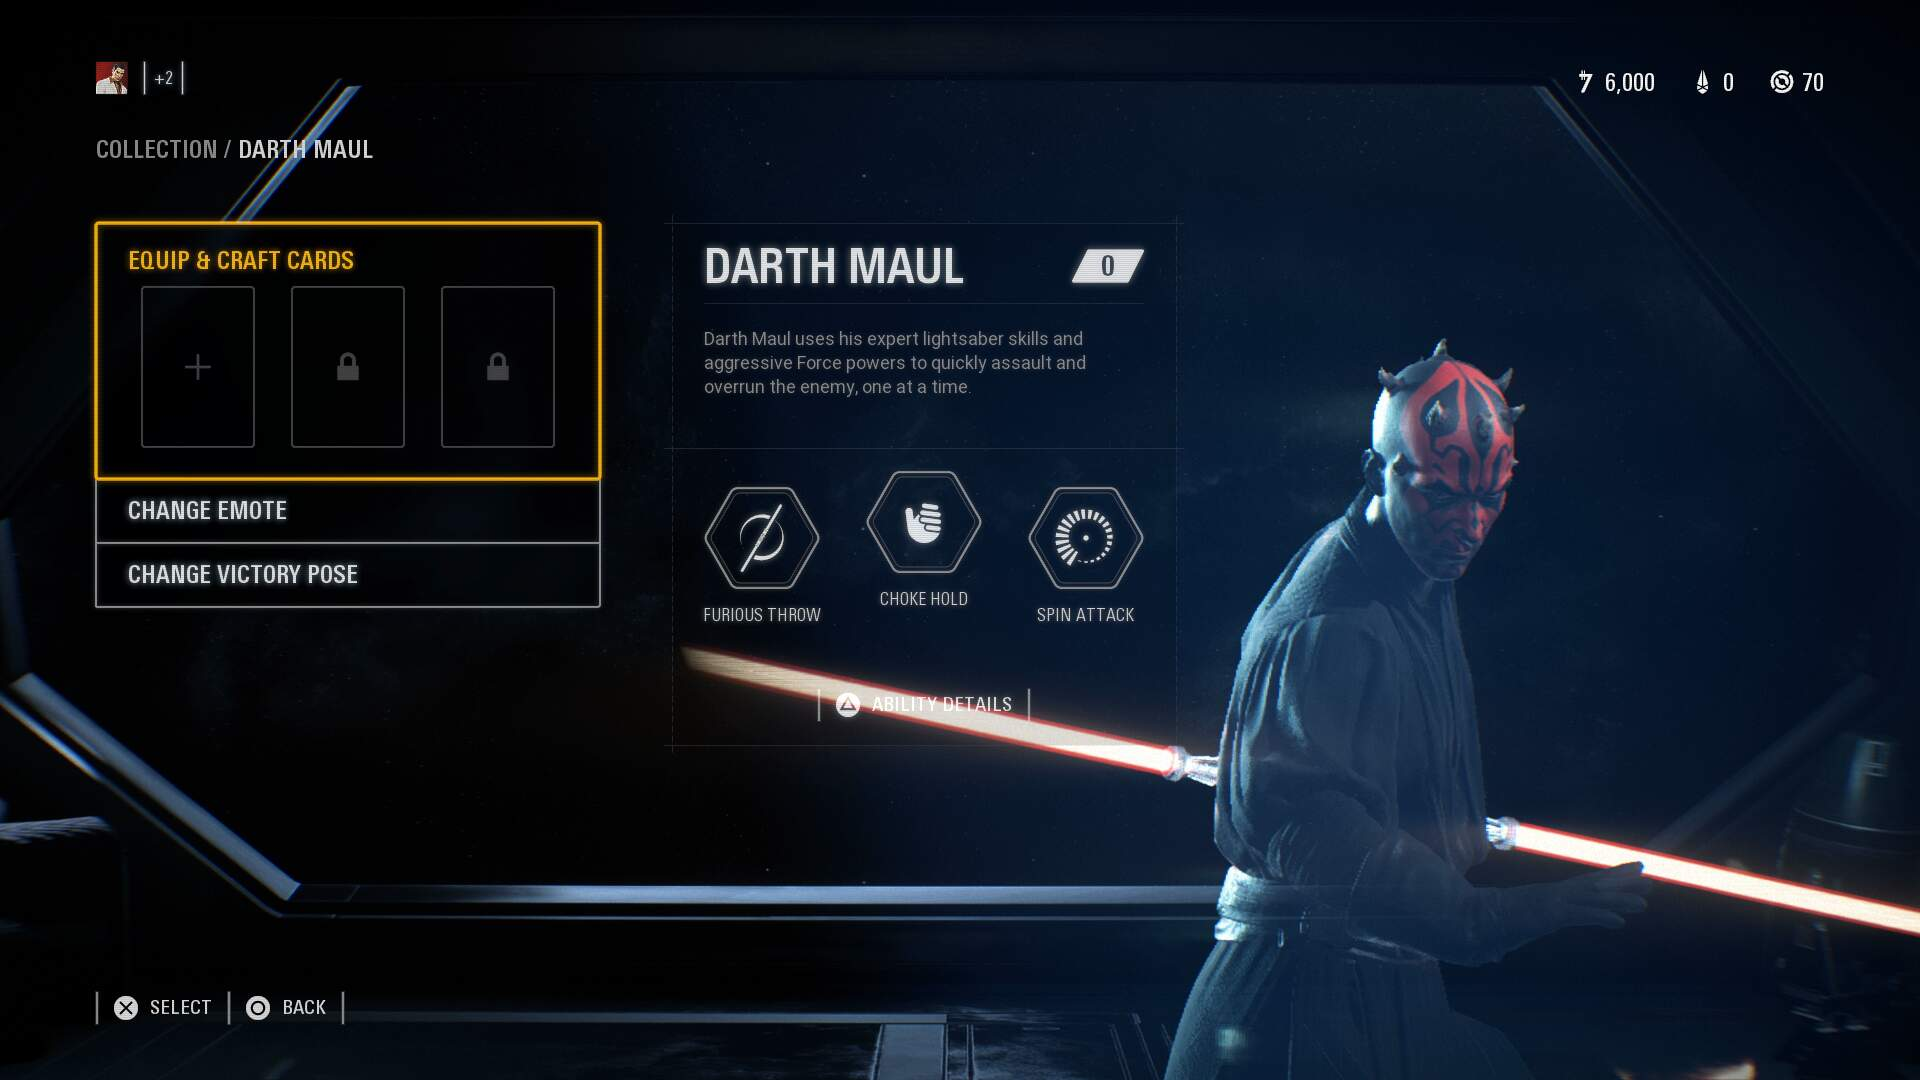 Star Wars Battlefront 2 Executive Producer Disputes How Long it Takes to Unlock Everything in the Game